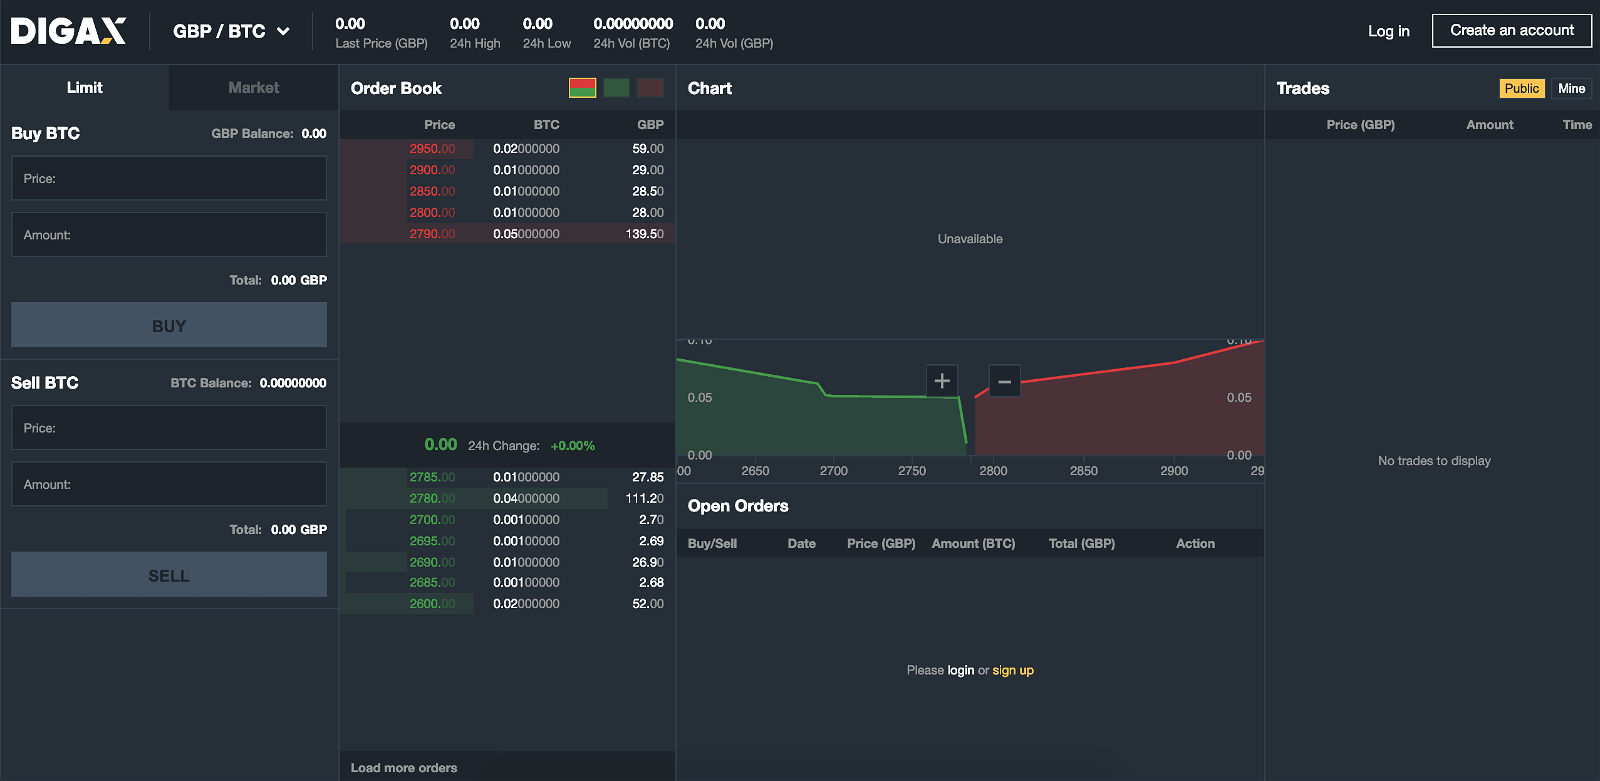 Screenshot of the Digax Exchange trading interface